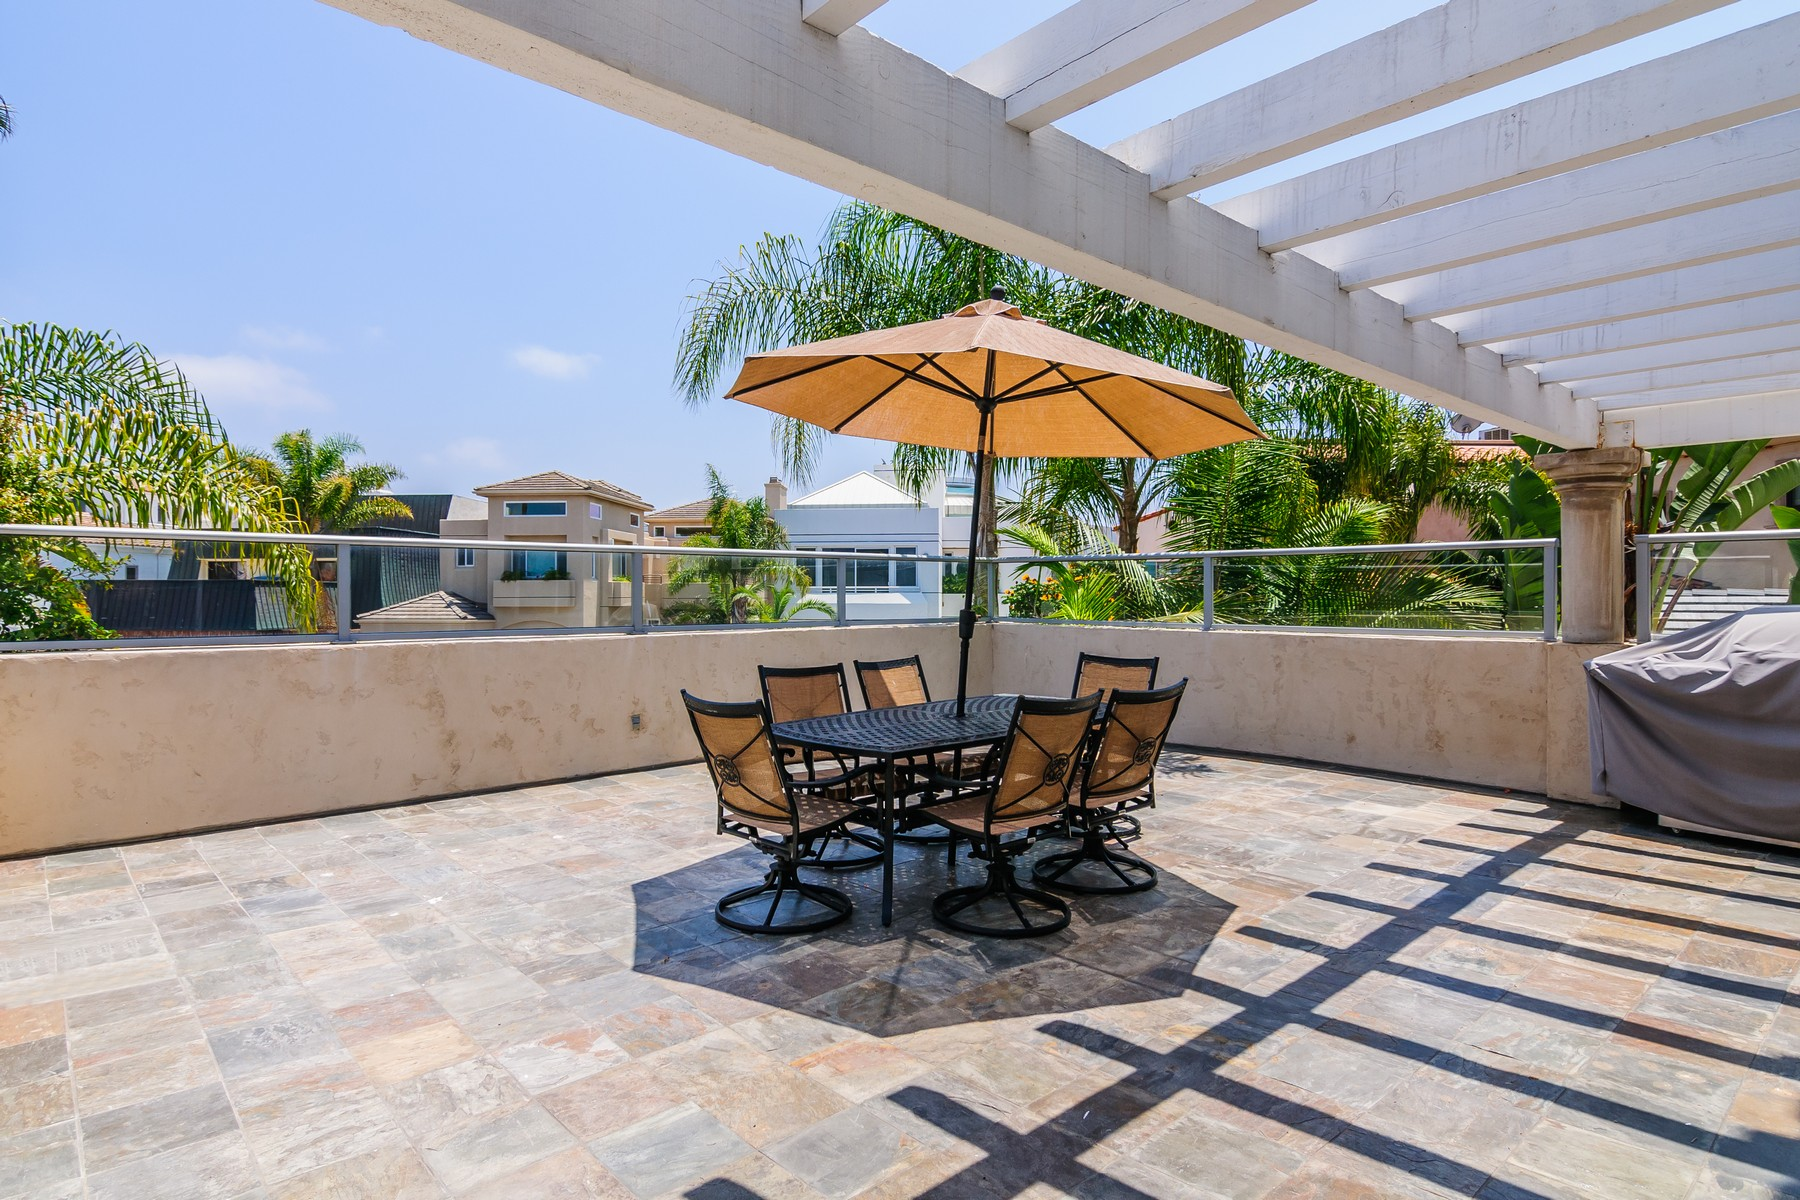 Additional photo for property listing at 8 Sandpiper Strand  Coronado, California 92118 United States